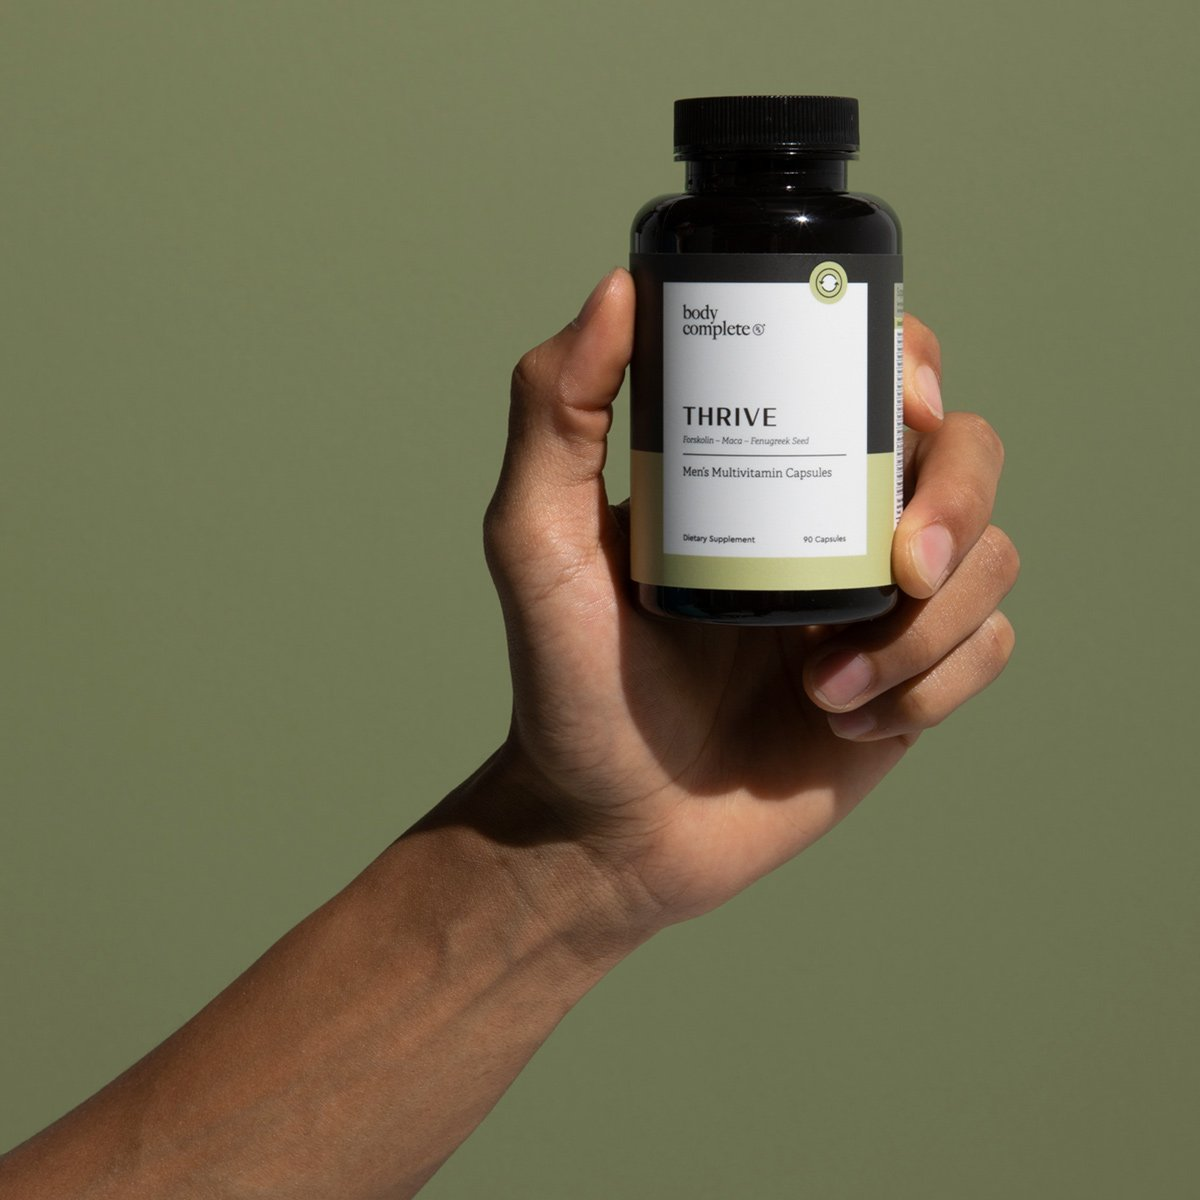 Image of Thrive Men's Multivitamin